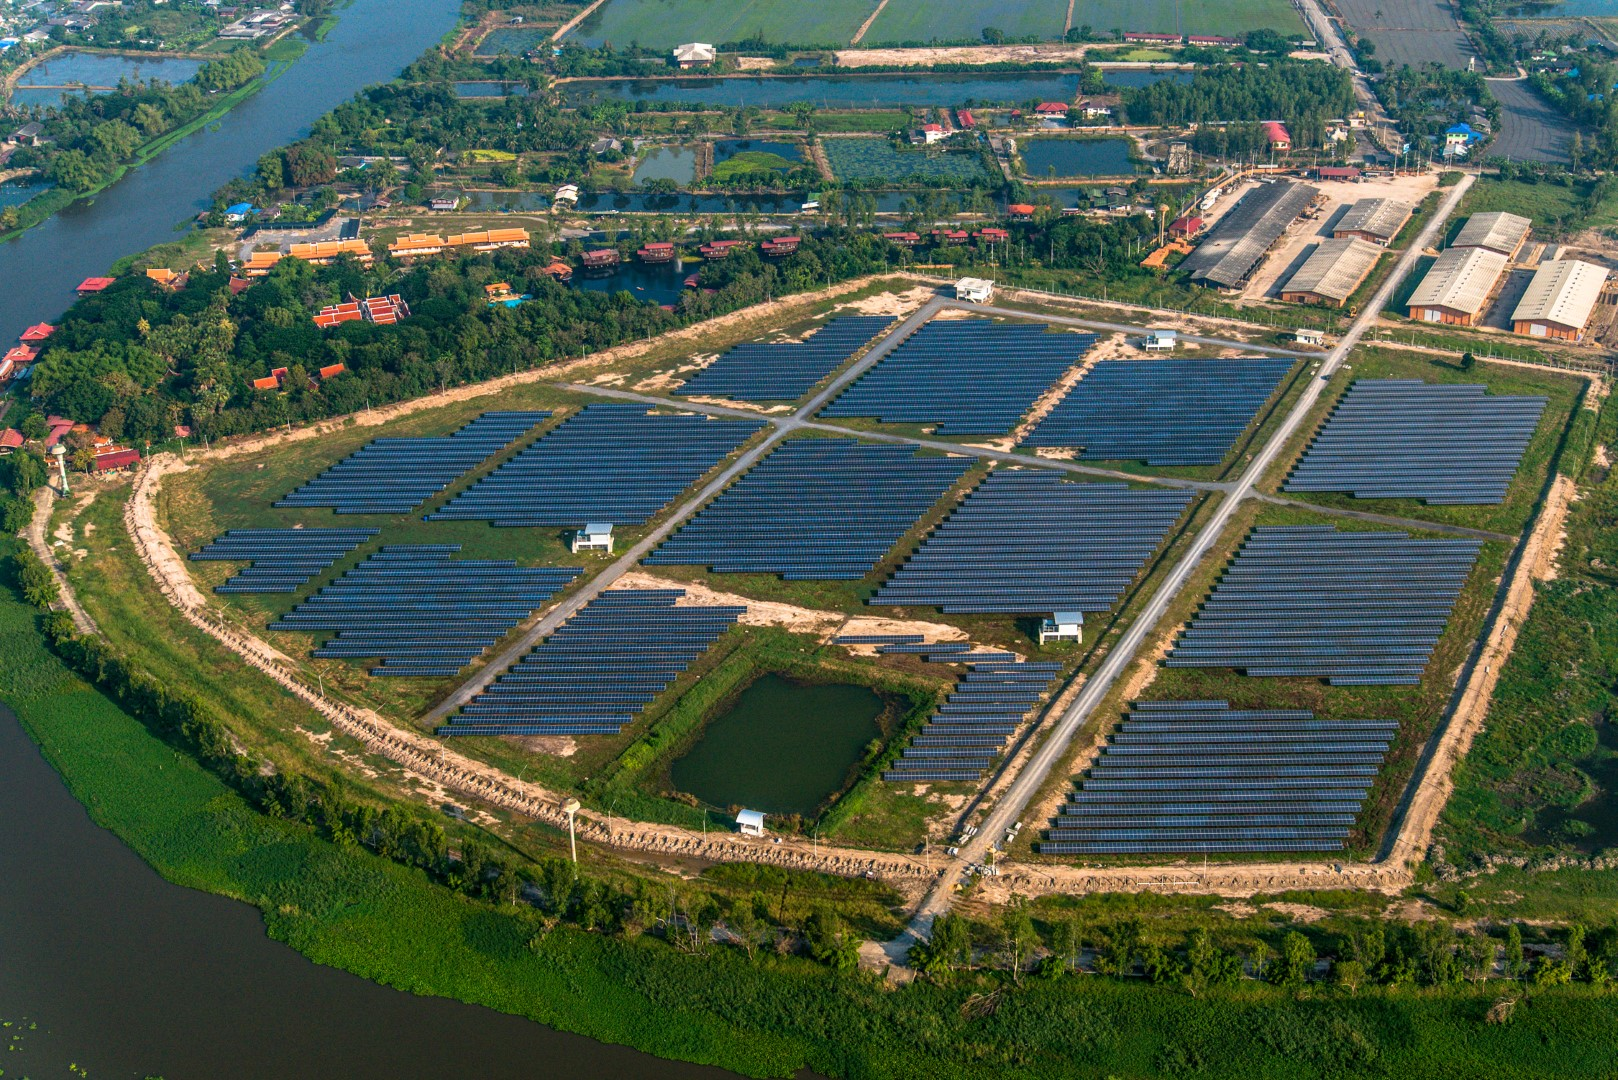 Phoenix Solar's Sai Thong plant in Thailand, developed by its Singapore subsidiary. Image credit: Phoenix Solar.